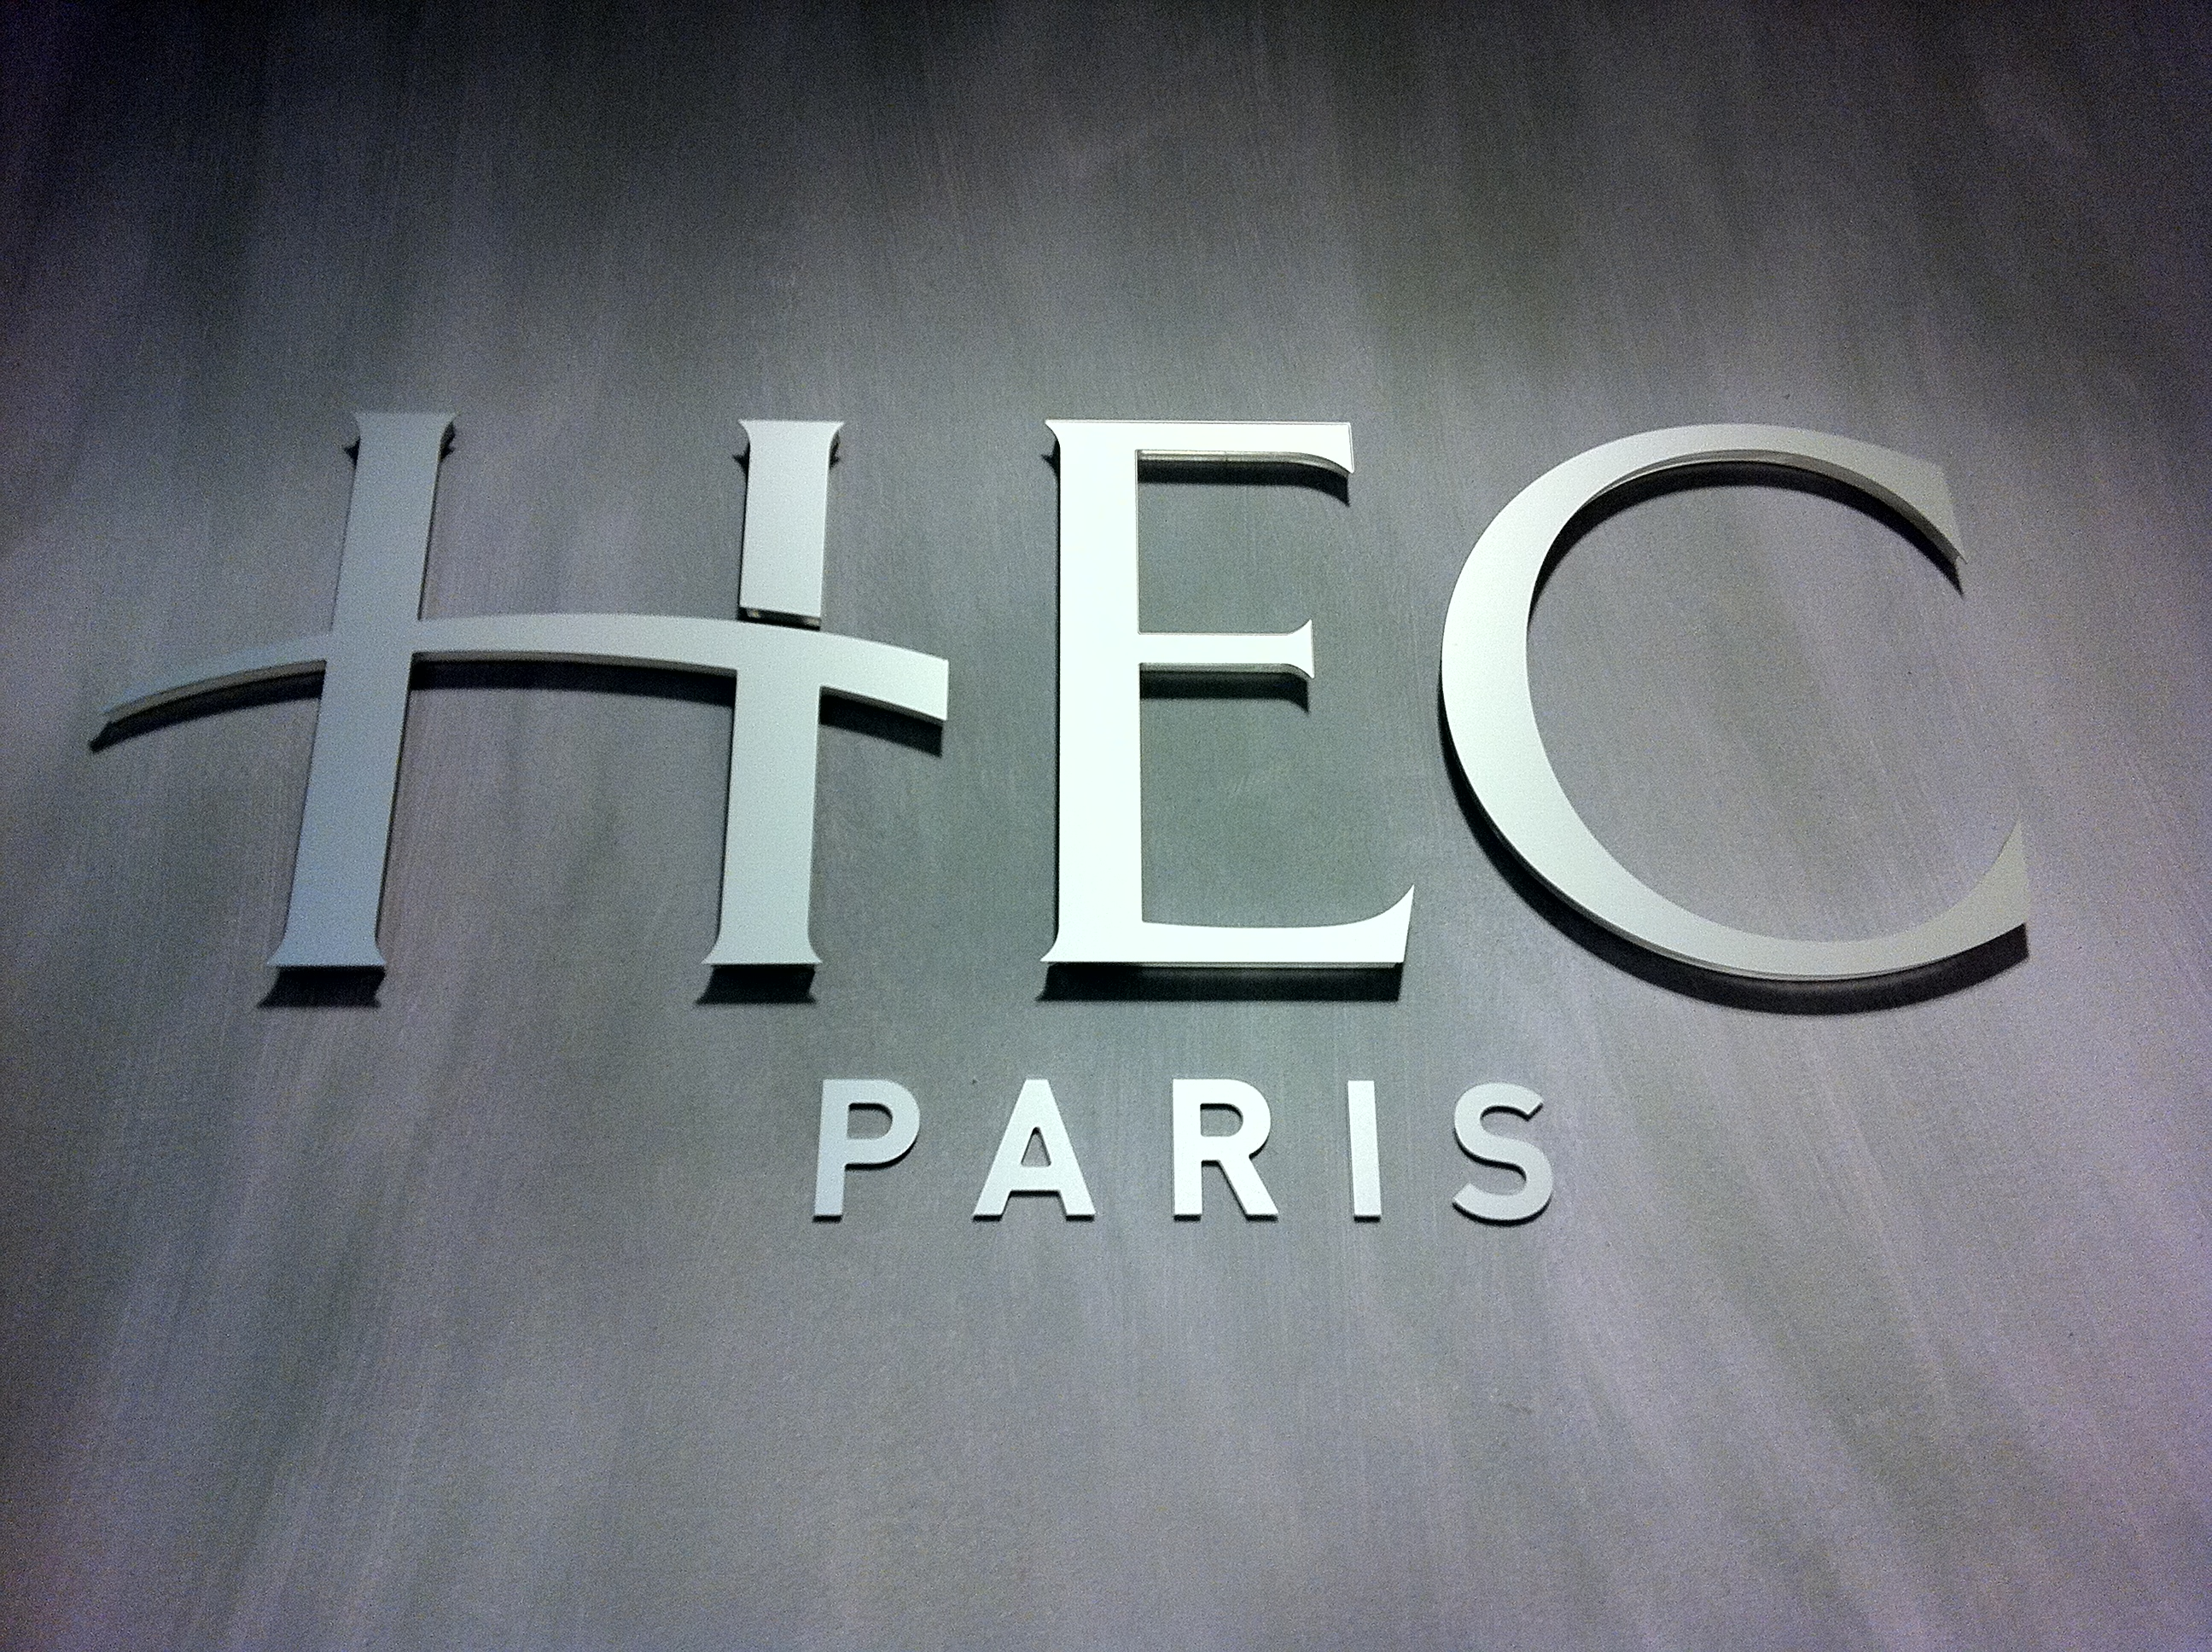 HEC Paris / source : http://www.mec-info.com/